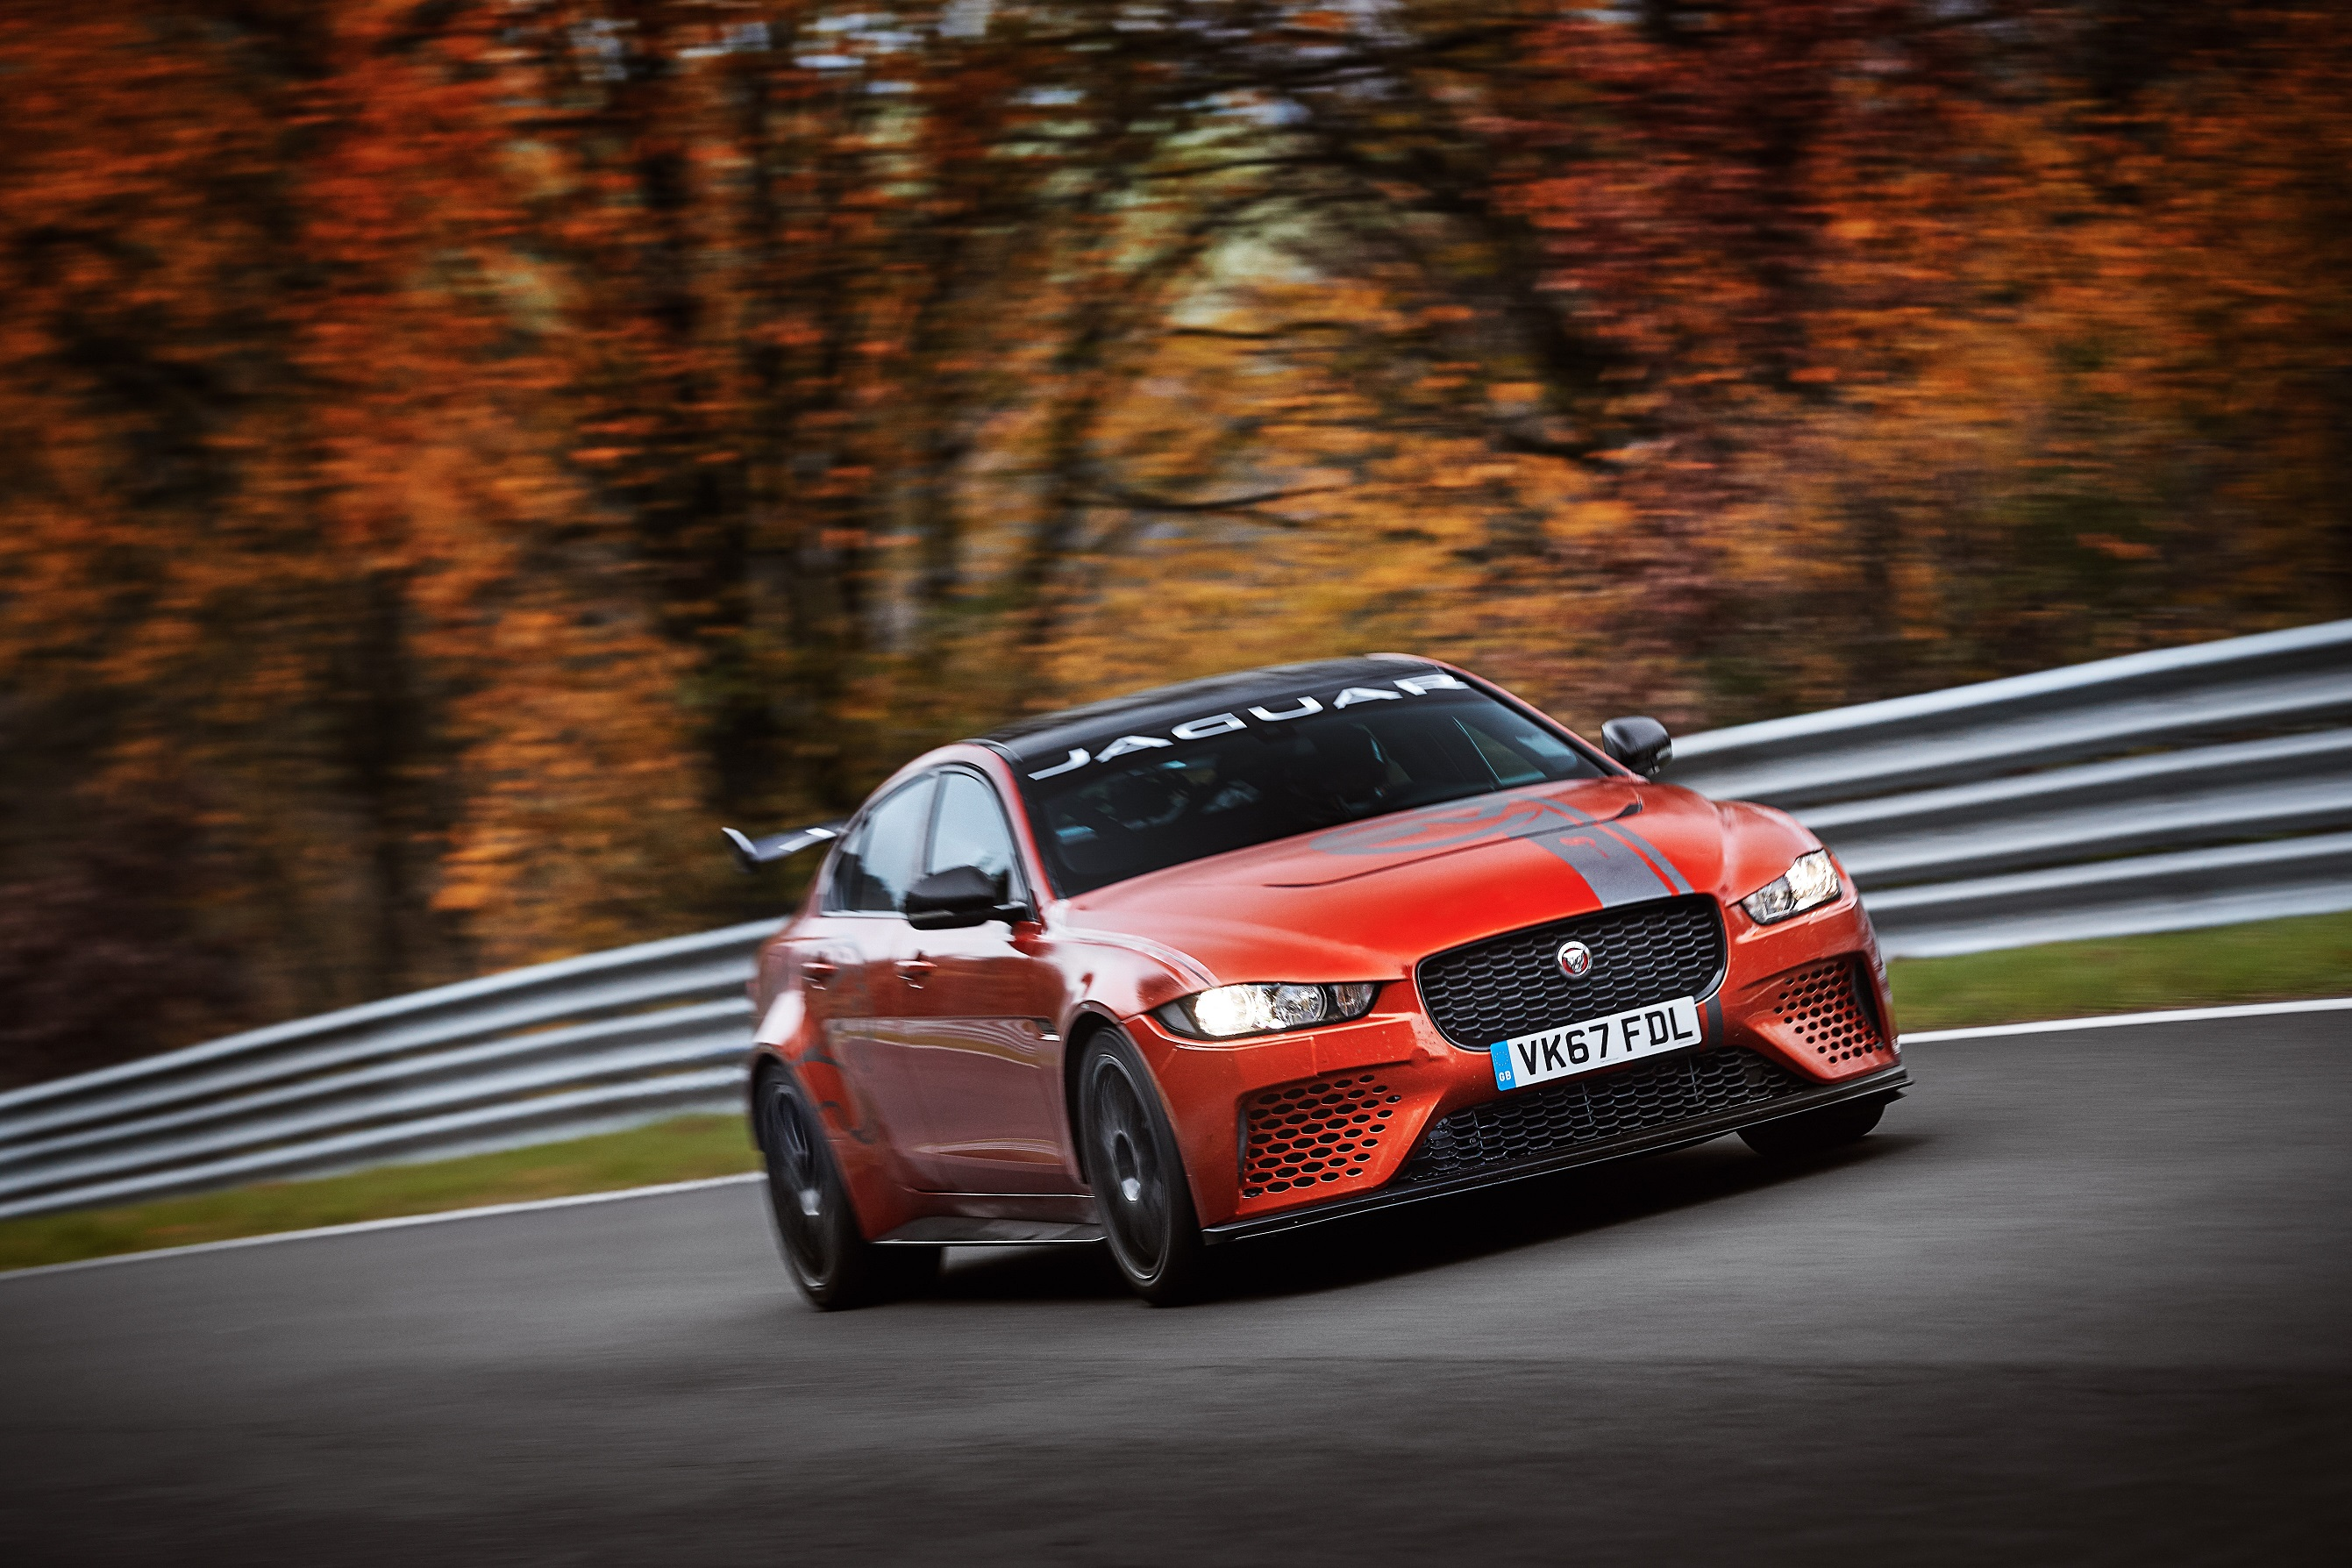 Photo of Jaguar XE Sv Project 8 has lapped  Nurburgring Nordschleife and beaten the previous record of the fastest four door car lap, by 11 seconds